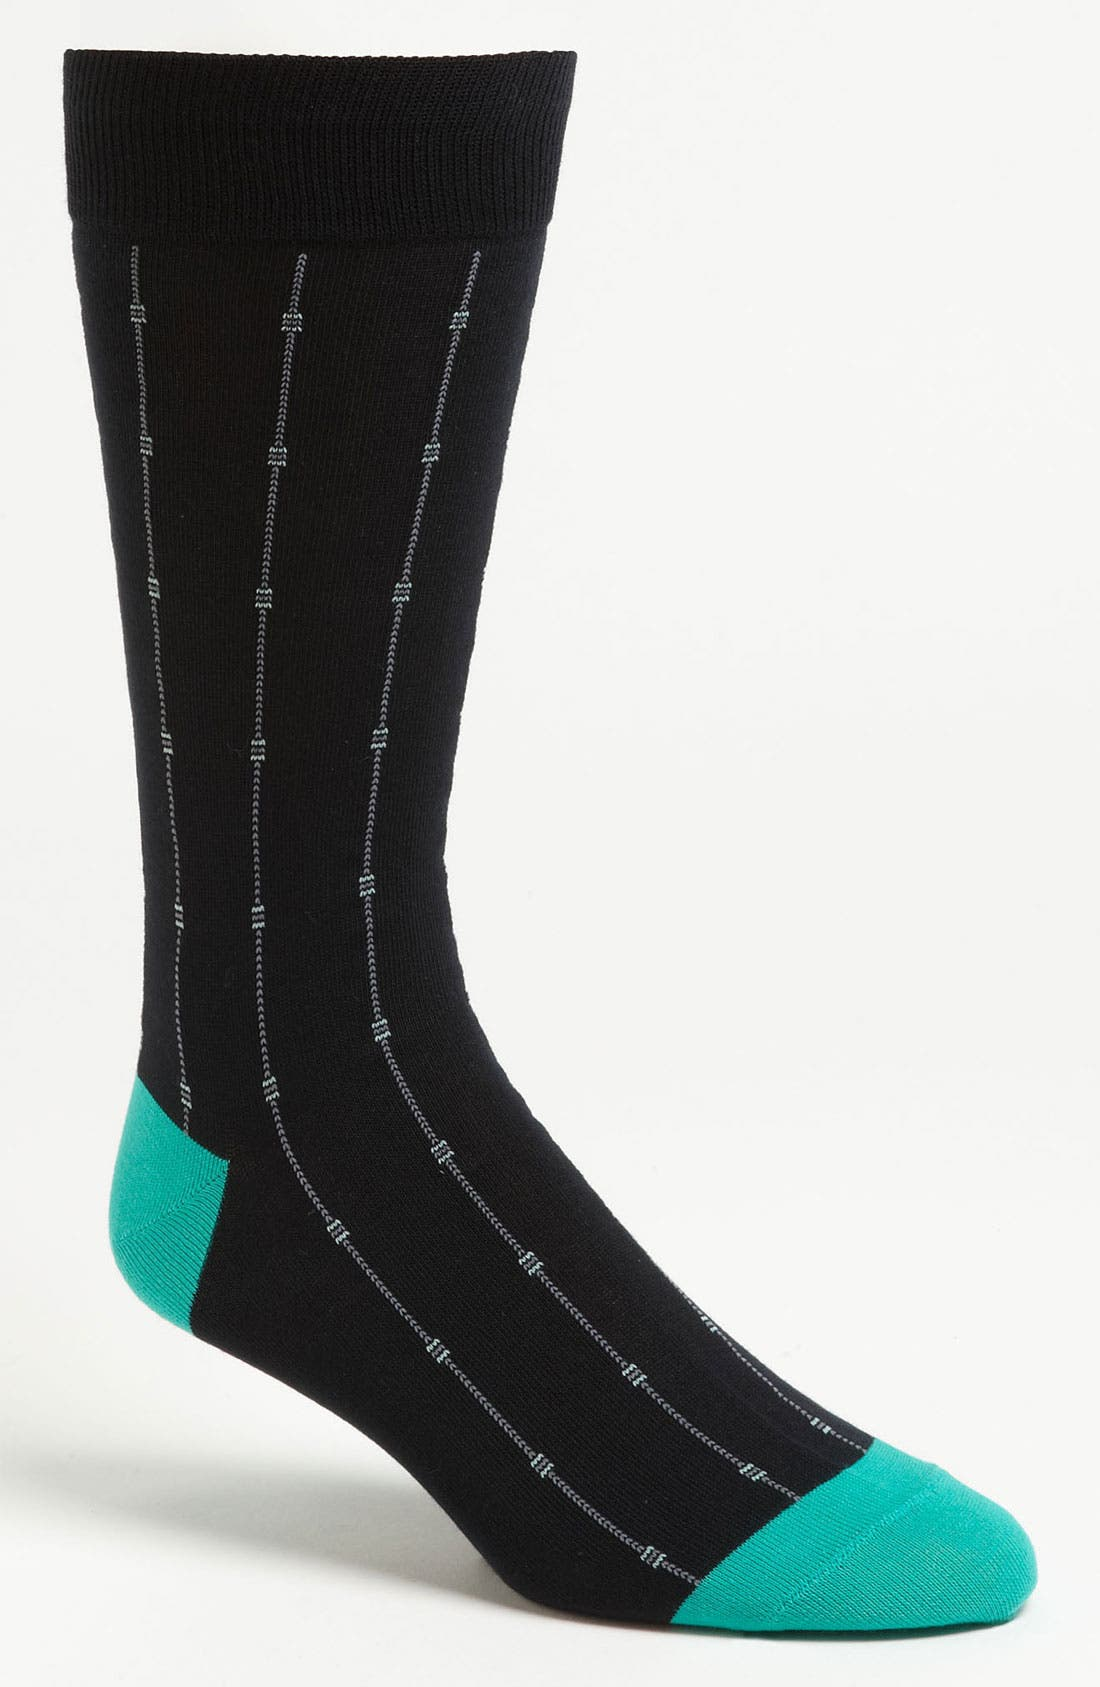 Main Image - Cole Haan 'Squares and Pin Stripes' Socks